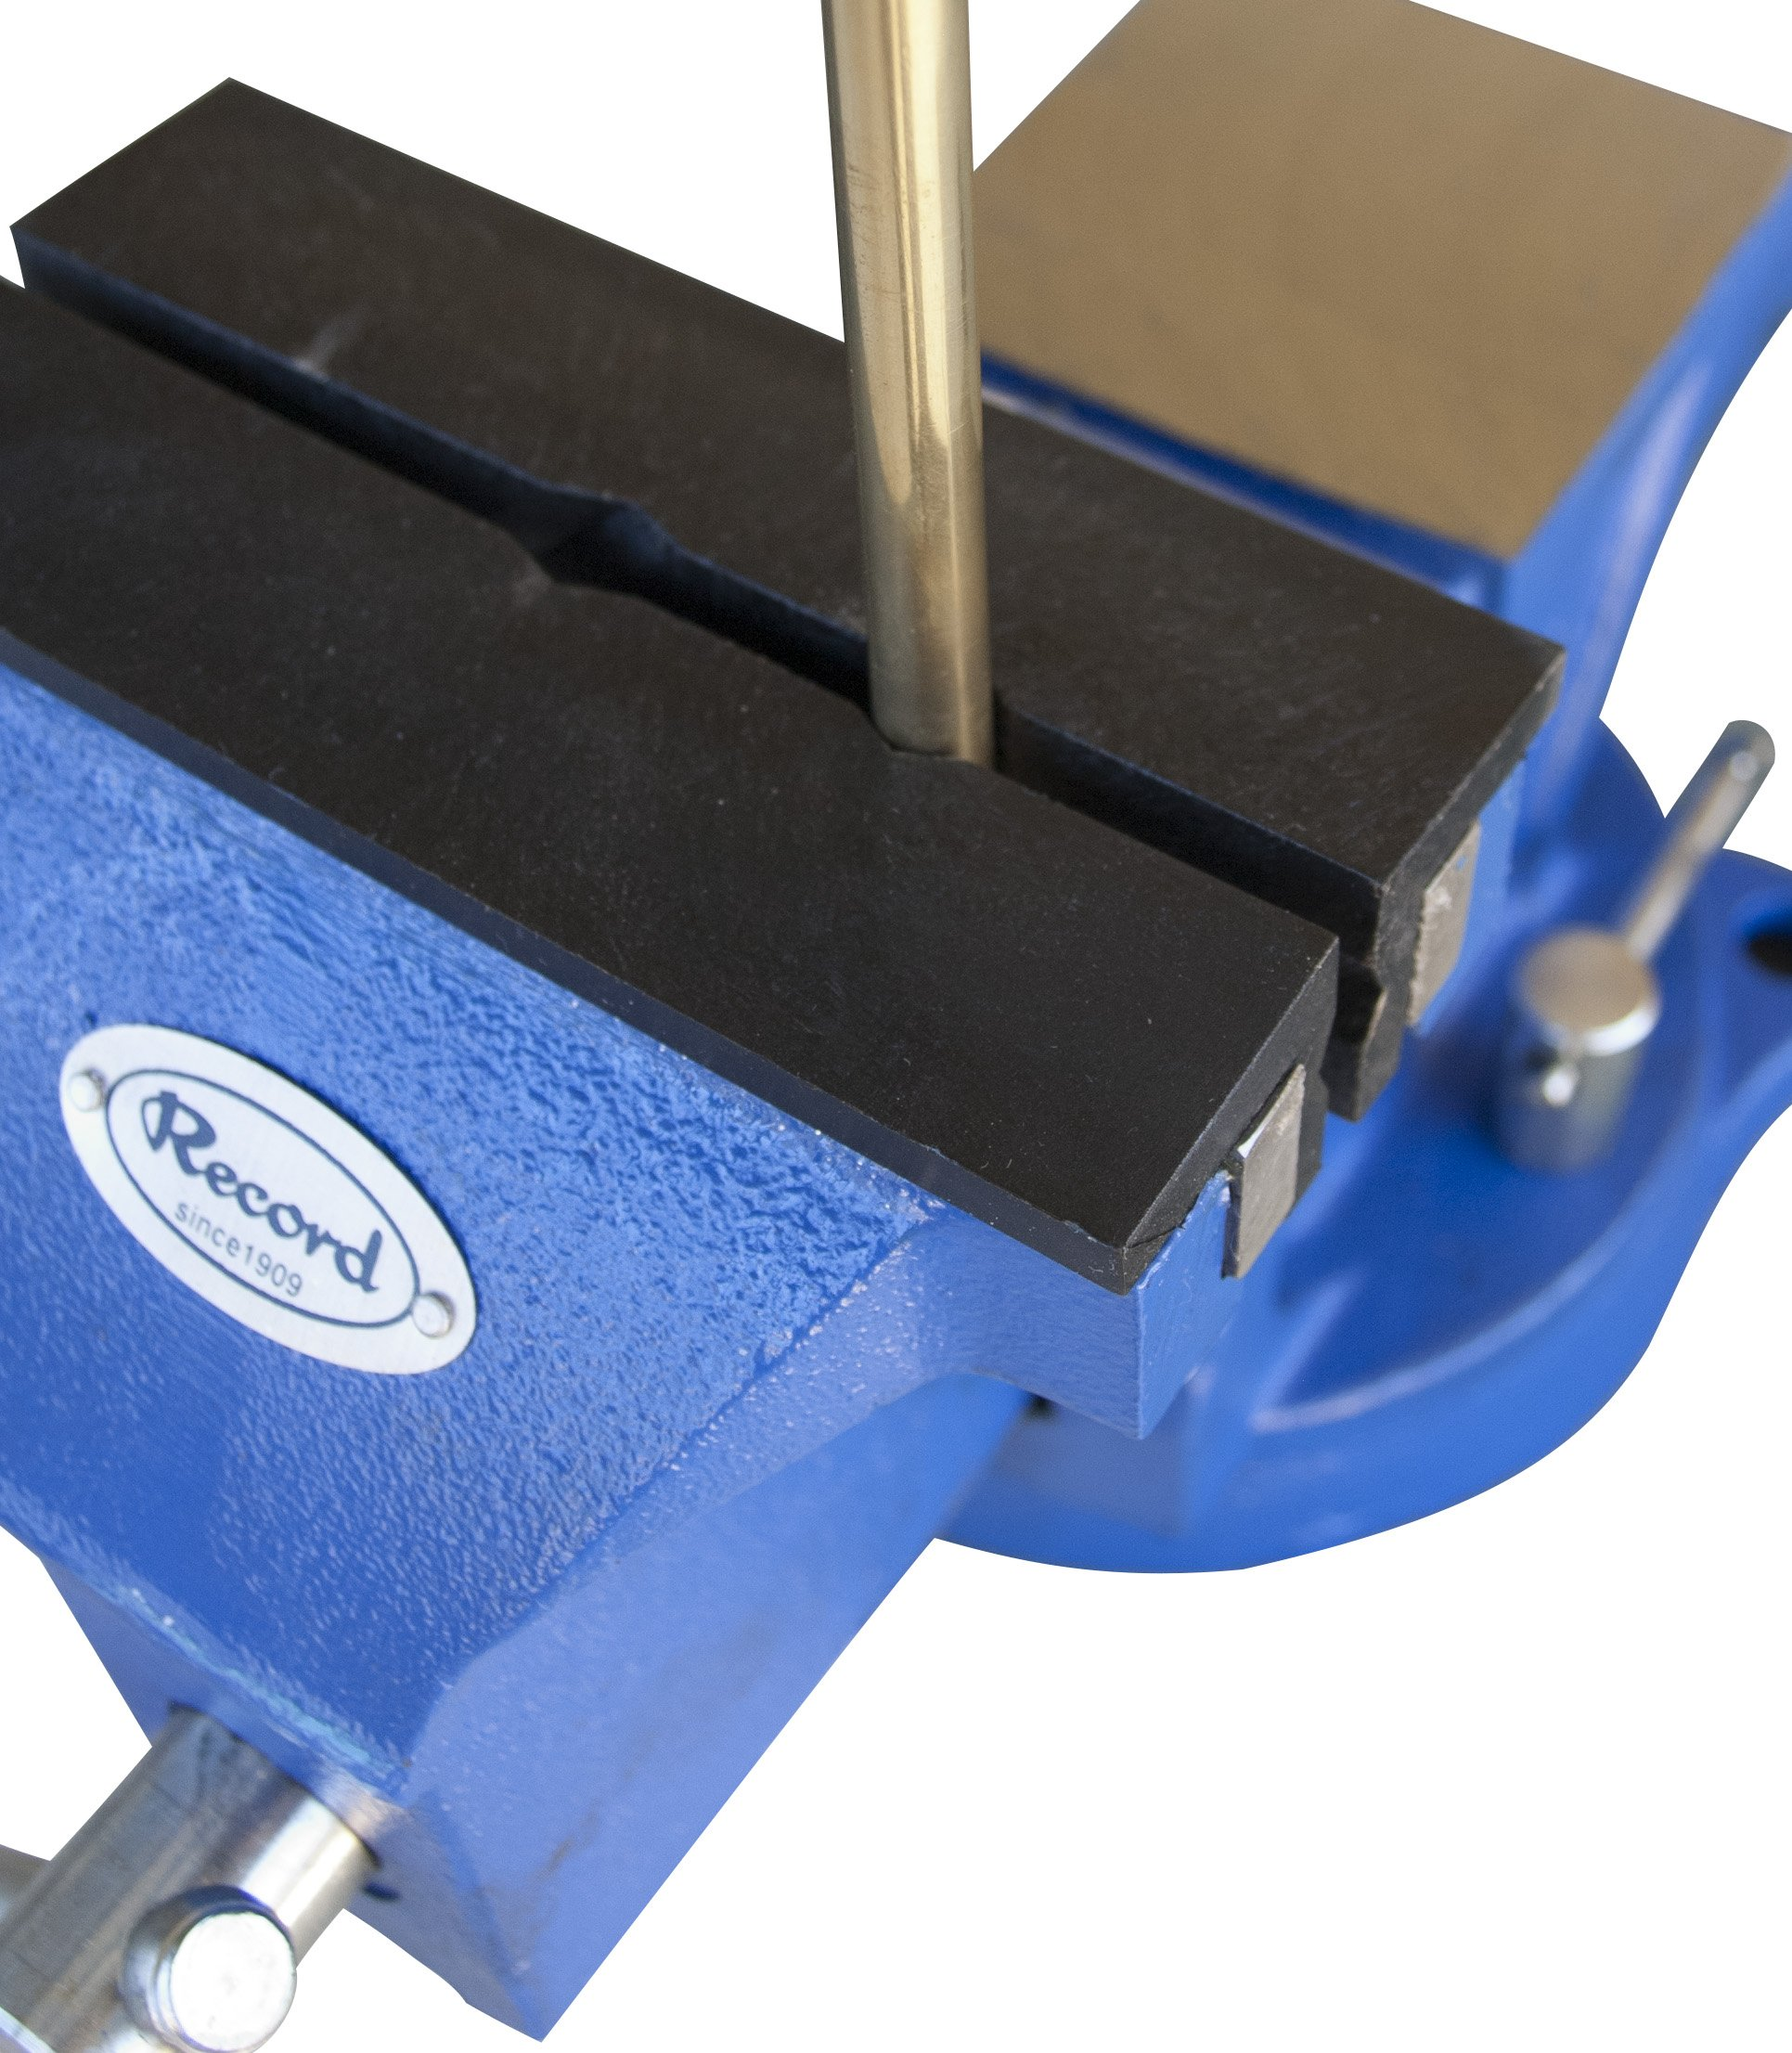 Vise Jaws - Nylon, Multipurpose 6'' - Use on any Metal Vise, Magnetic Reversible Pads (2 Sets in 1), Clamp Flat or Round Products - Available in 4'' or 6'' by JCL PRODUCTS (Image #5)